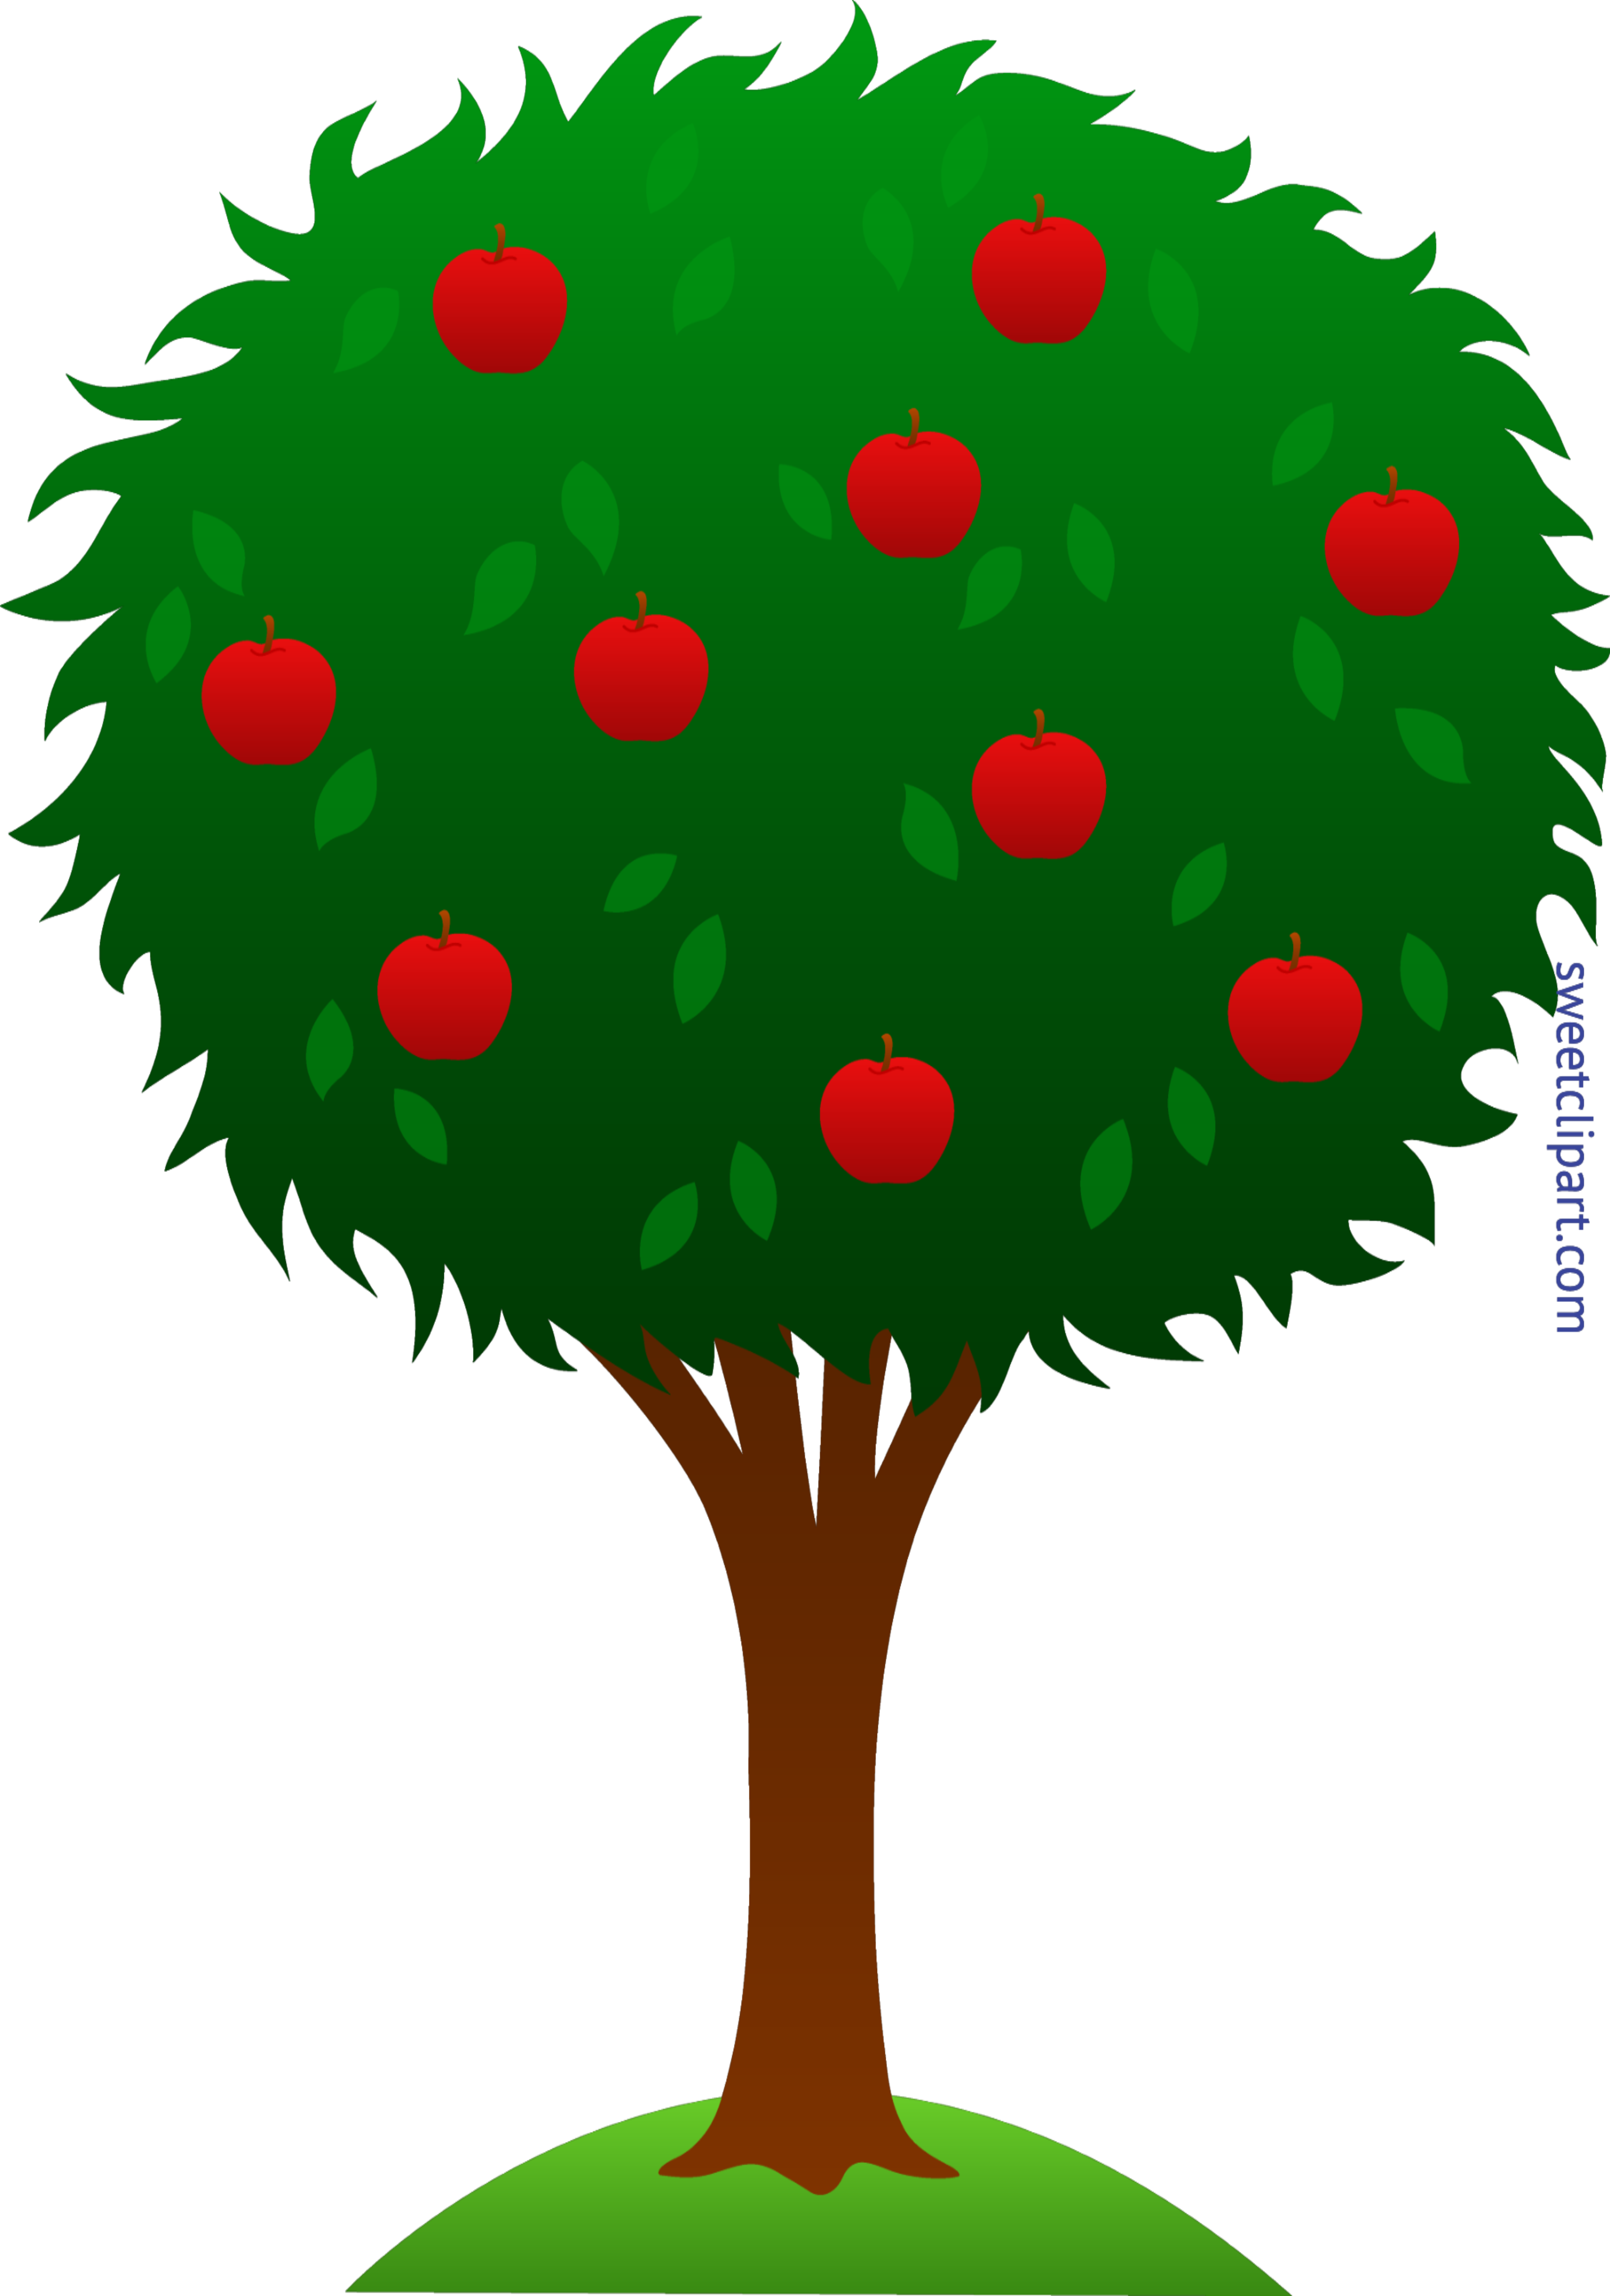 Clipart apple green image royalty free library Apple Tree Clip Art - Sweet Clip Art image royalty free library